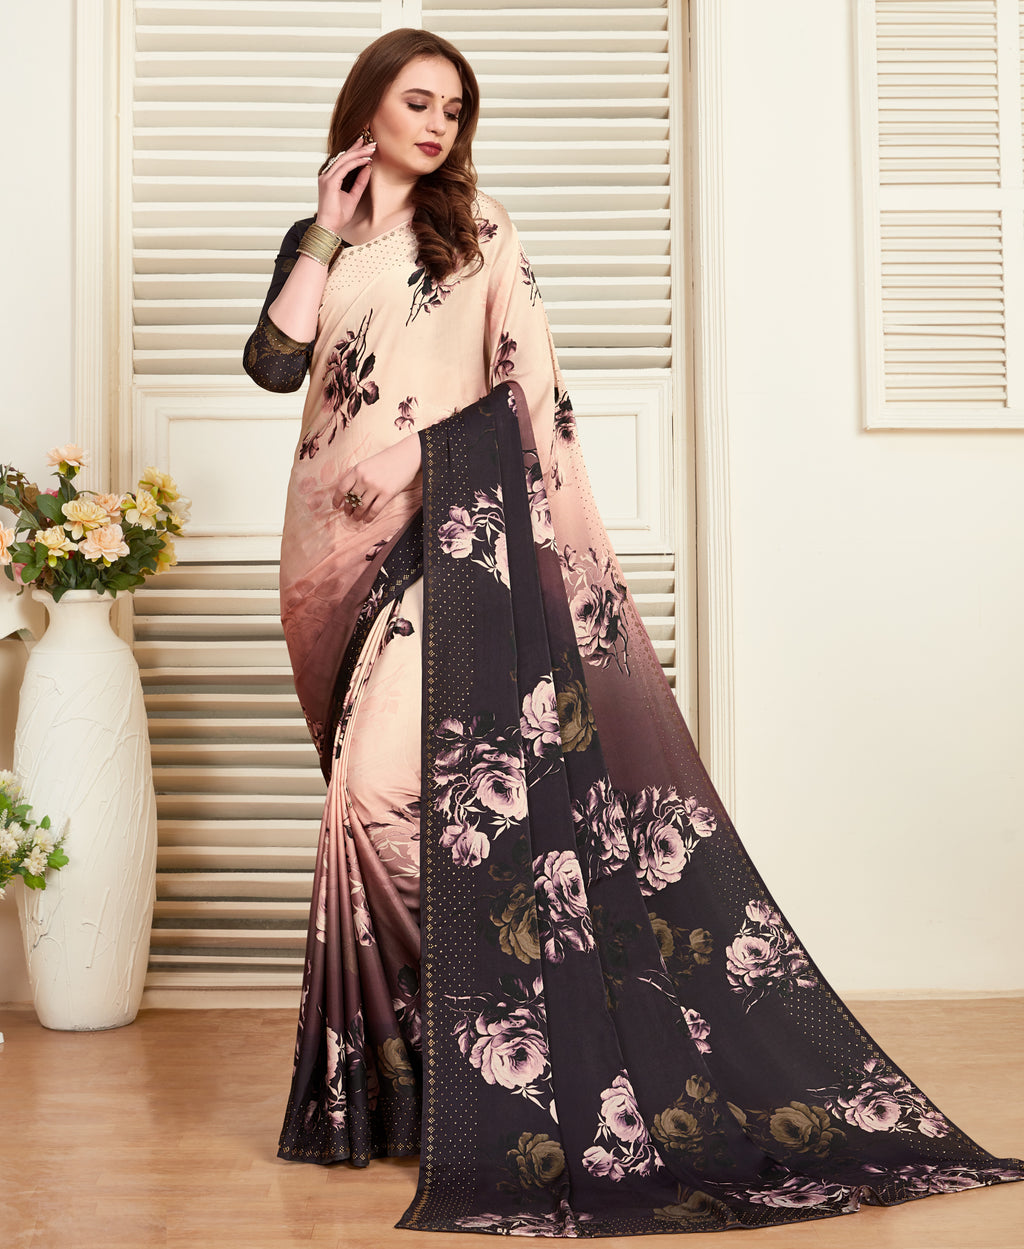 Baby Pink Color Crepe Silk Printed Office Party Sarees NYF-6151